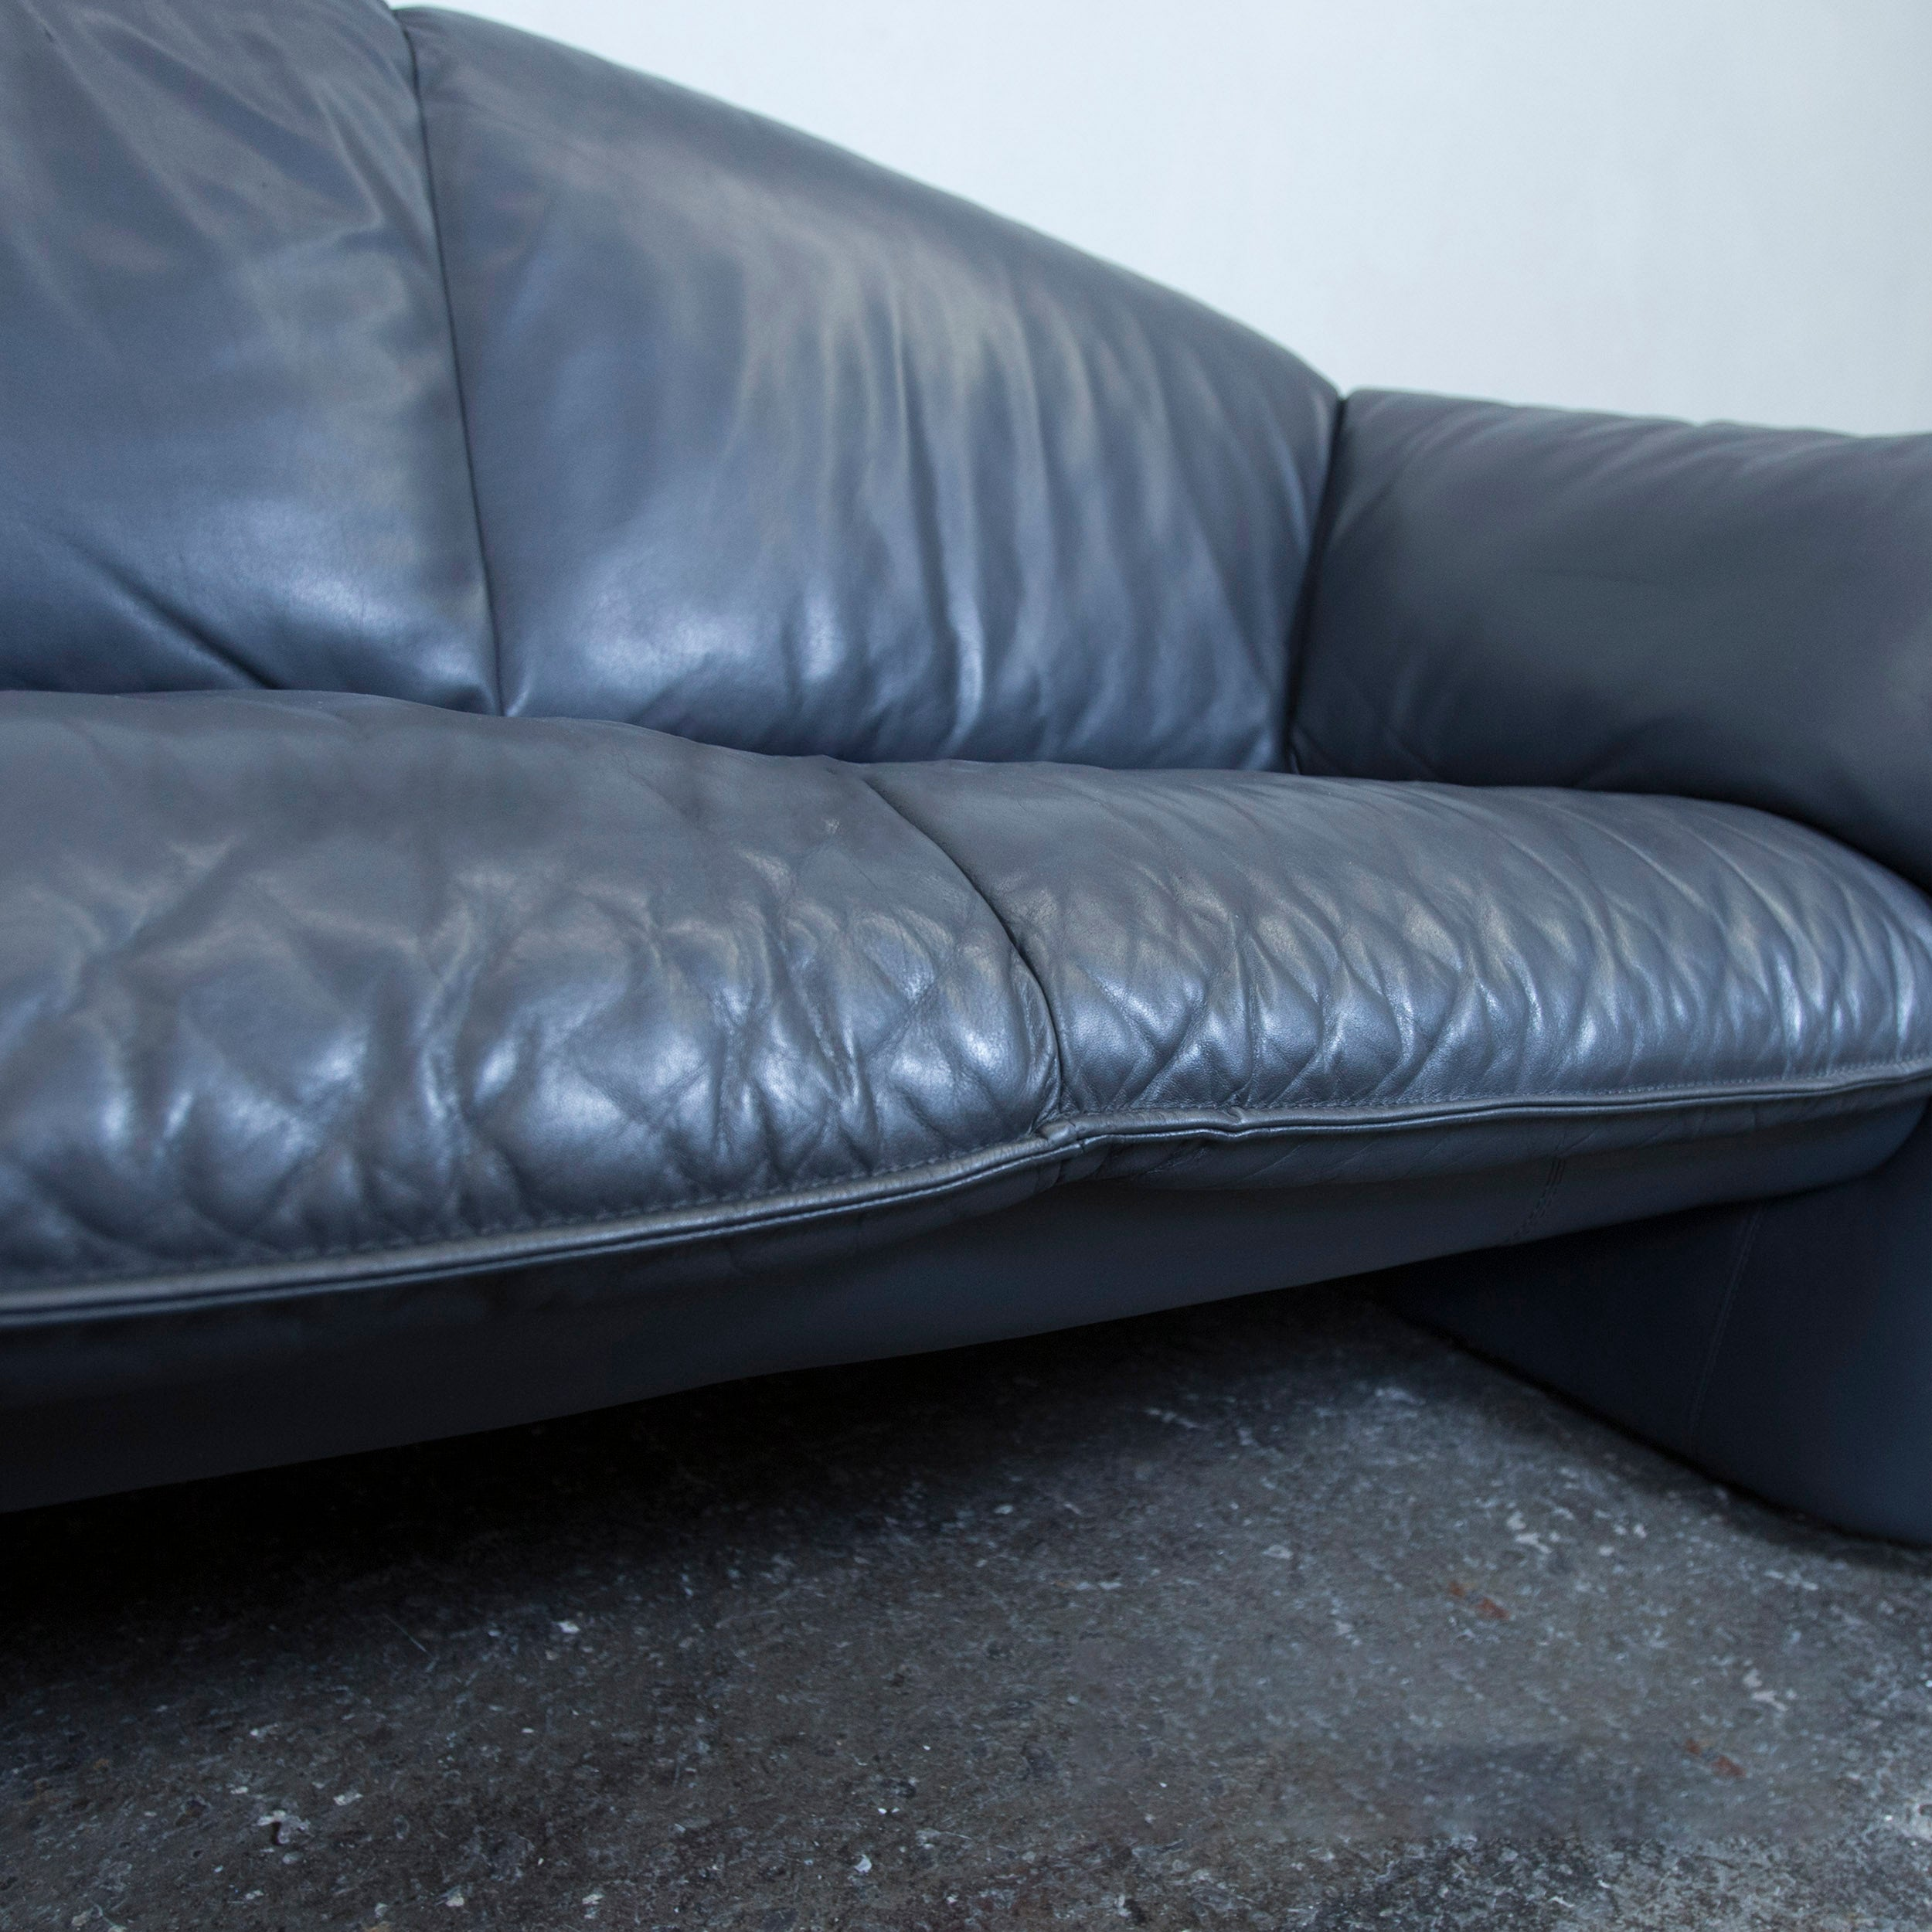 Leolux Designer Leather Sofa Blue Two Seat Couch Modern at 1stdibs